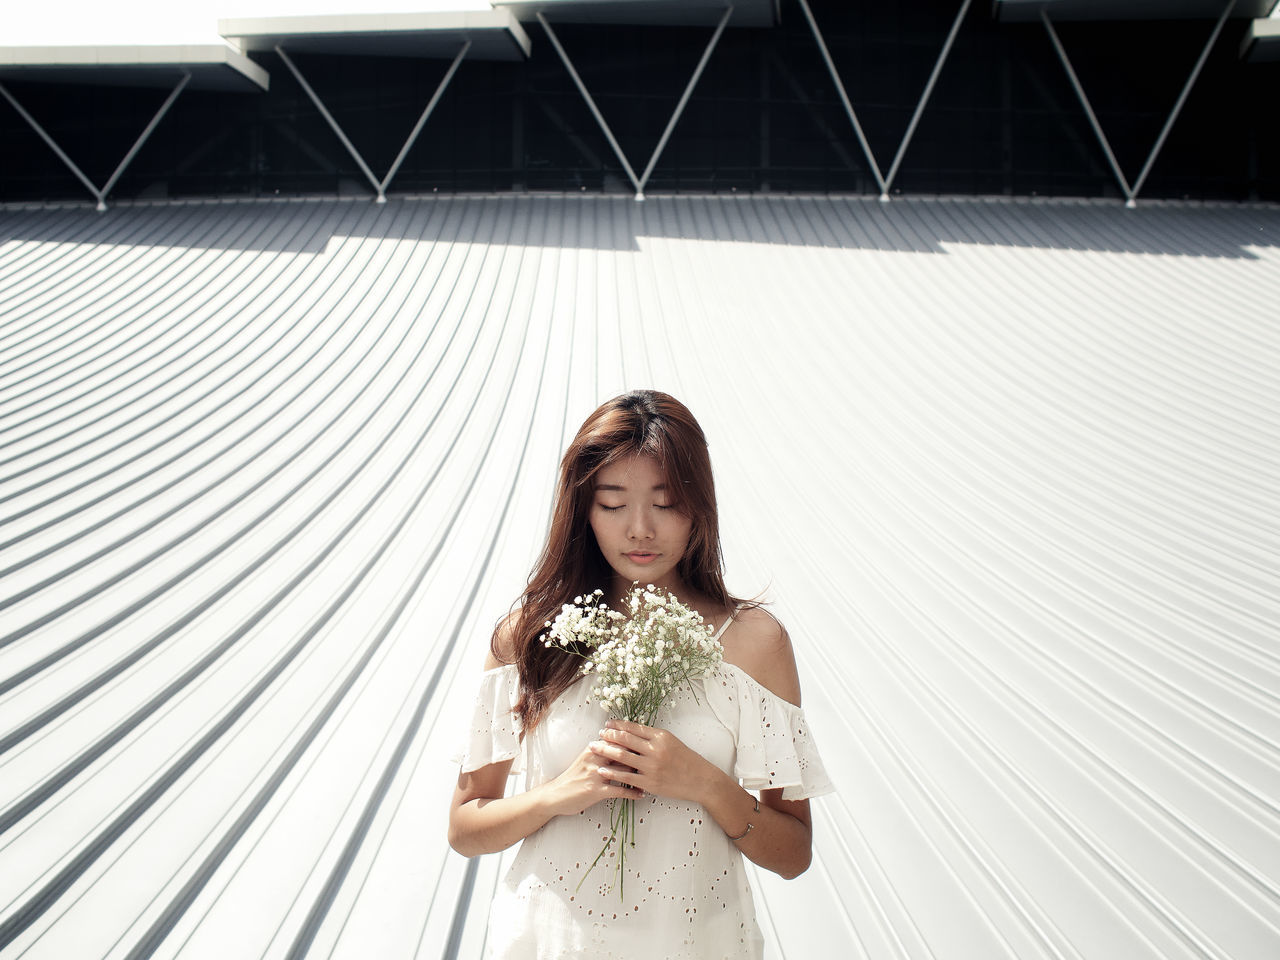 one person, young adult, standing, real people, front view, lifestyles, happiness, day, outdoors, young women, holding, flower, beautiful woman, smiling, bride, adult, people